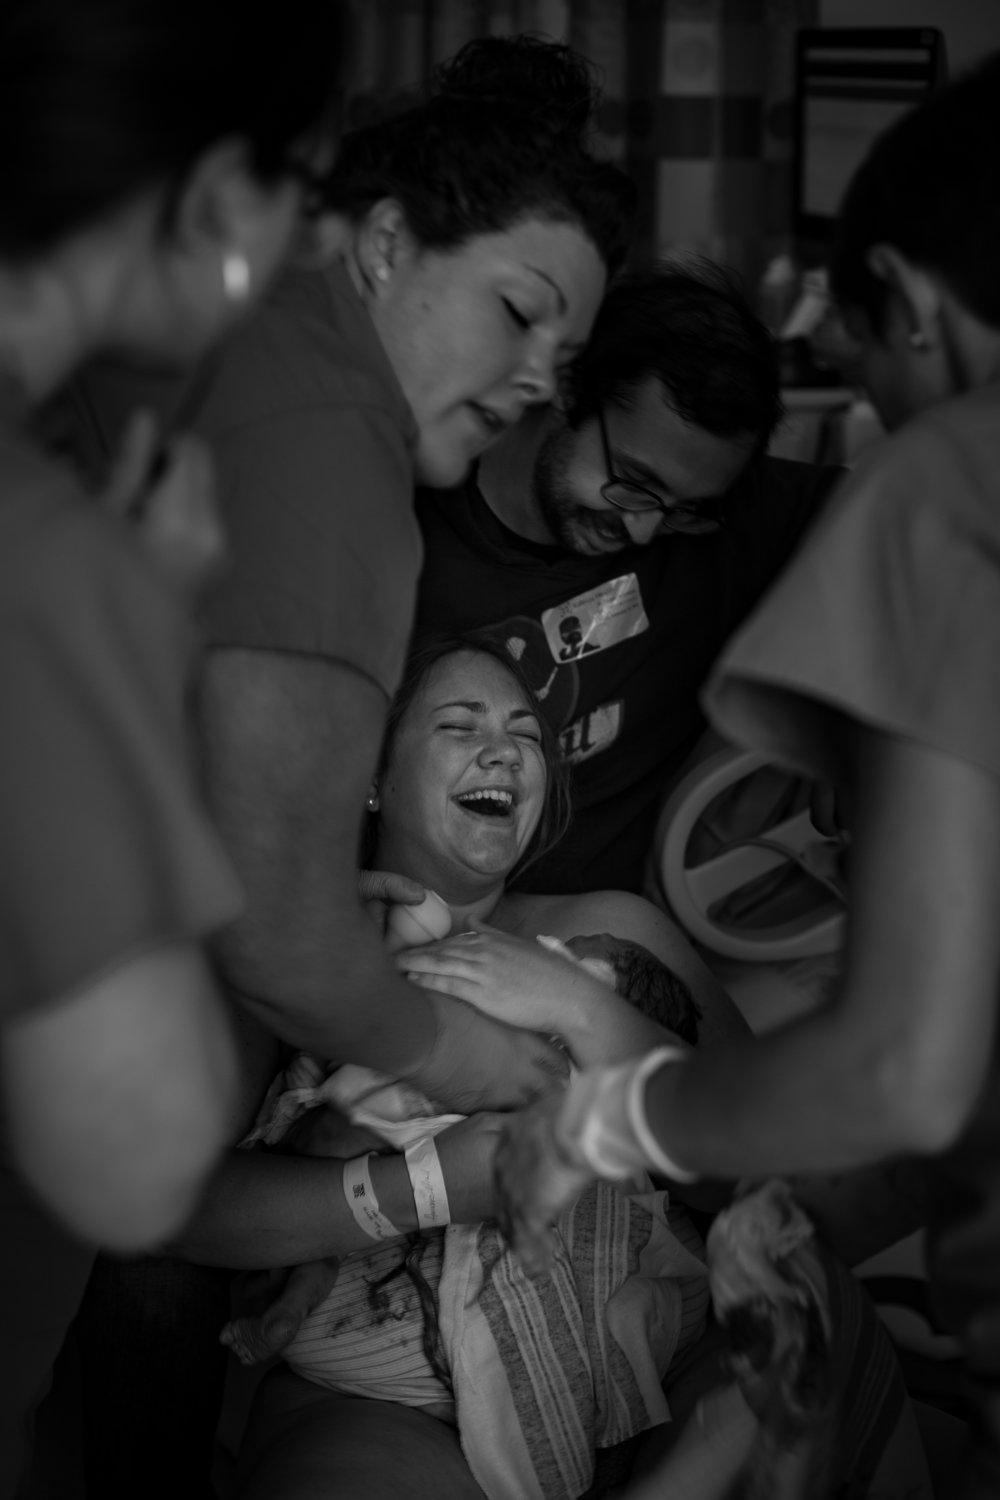 New mom is surprised and overjoyed as she holds her newborn bay.